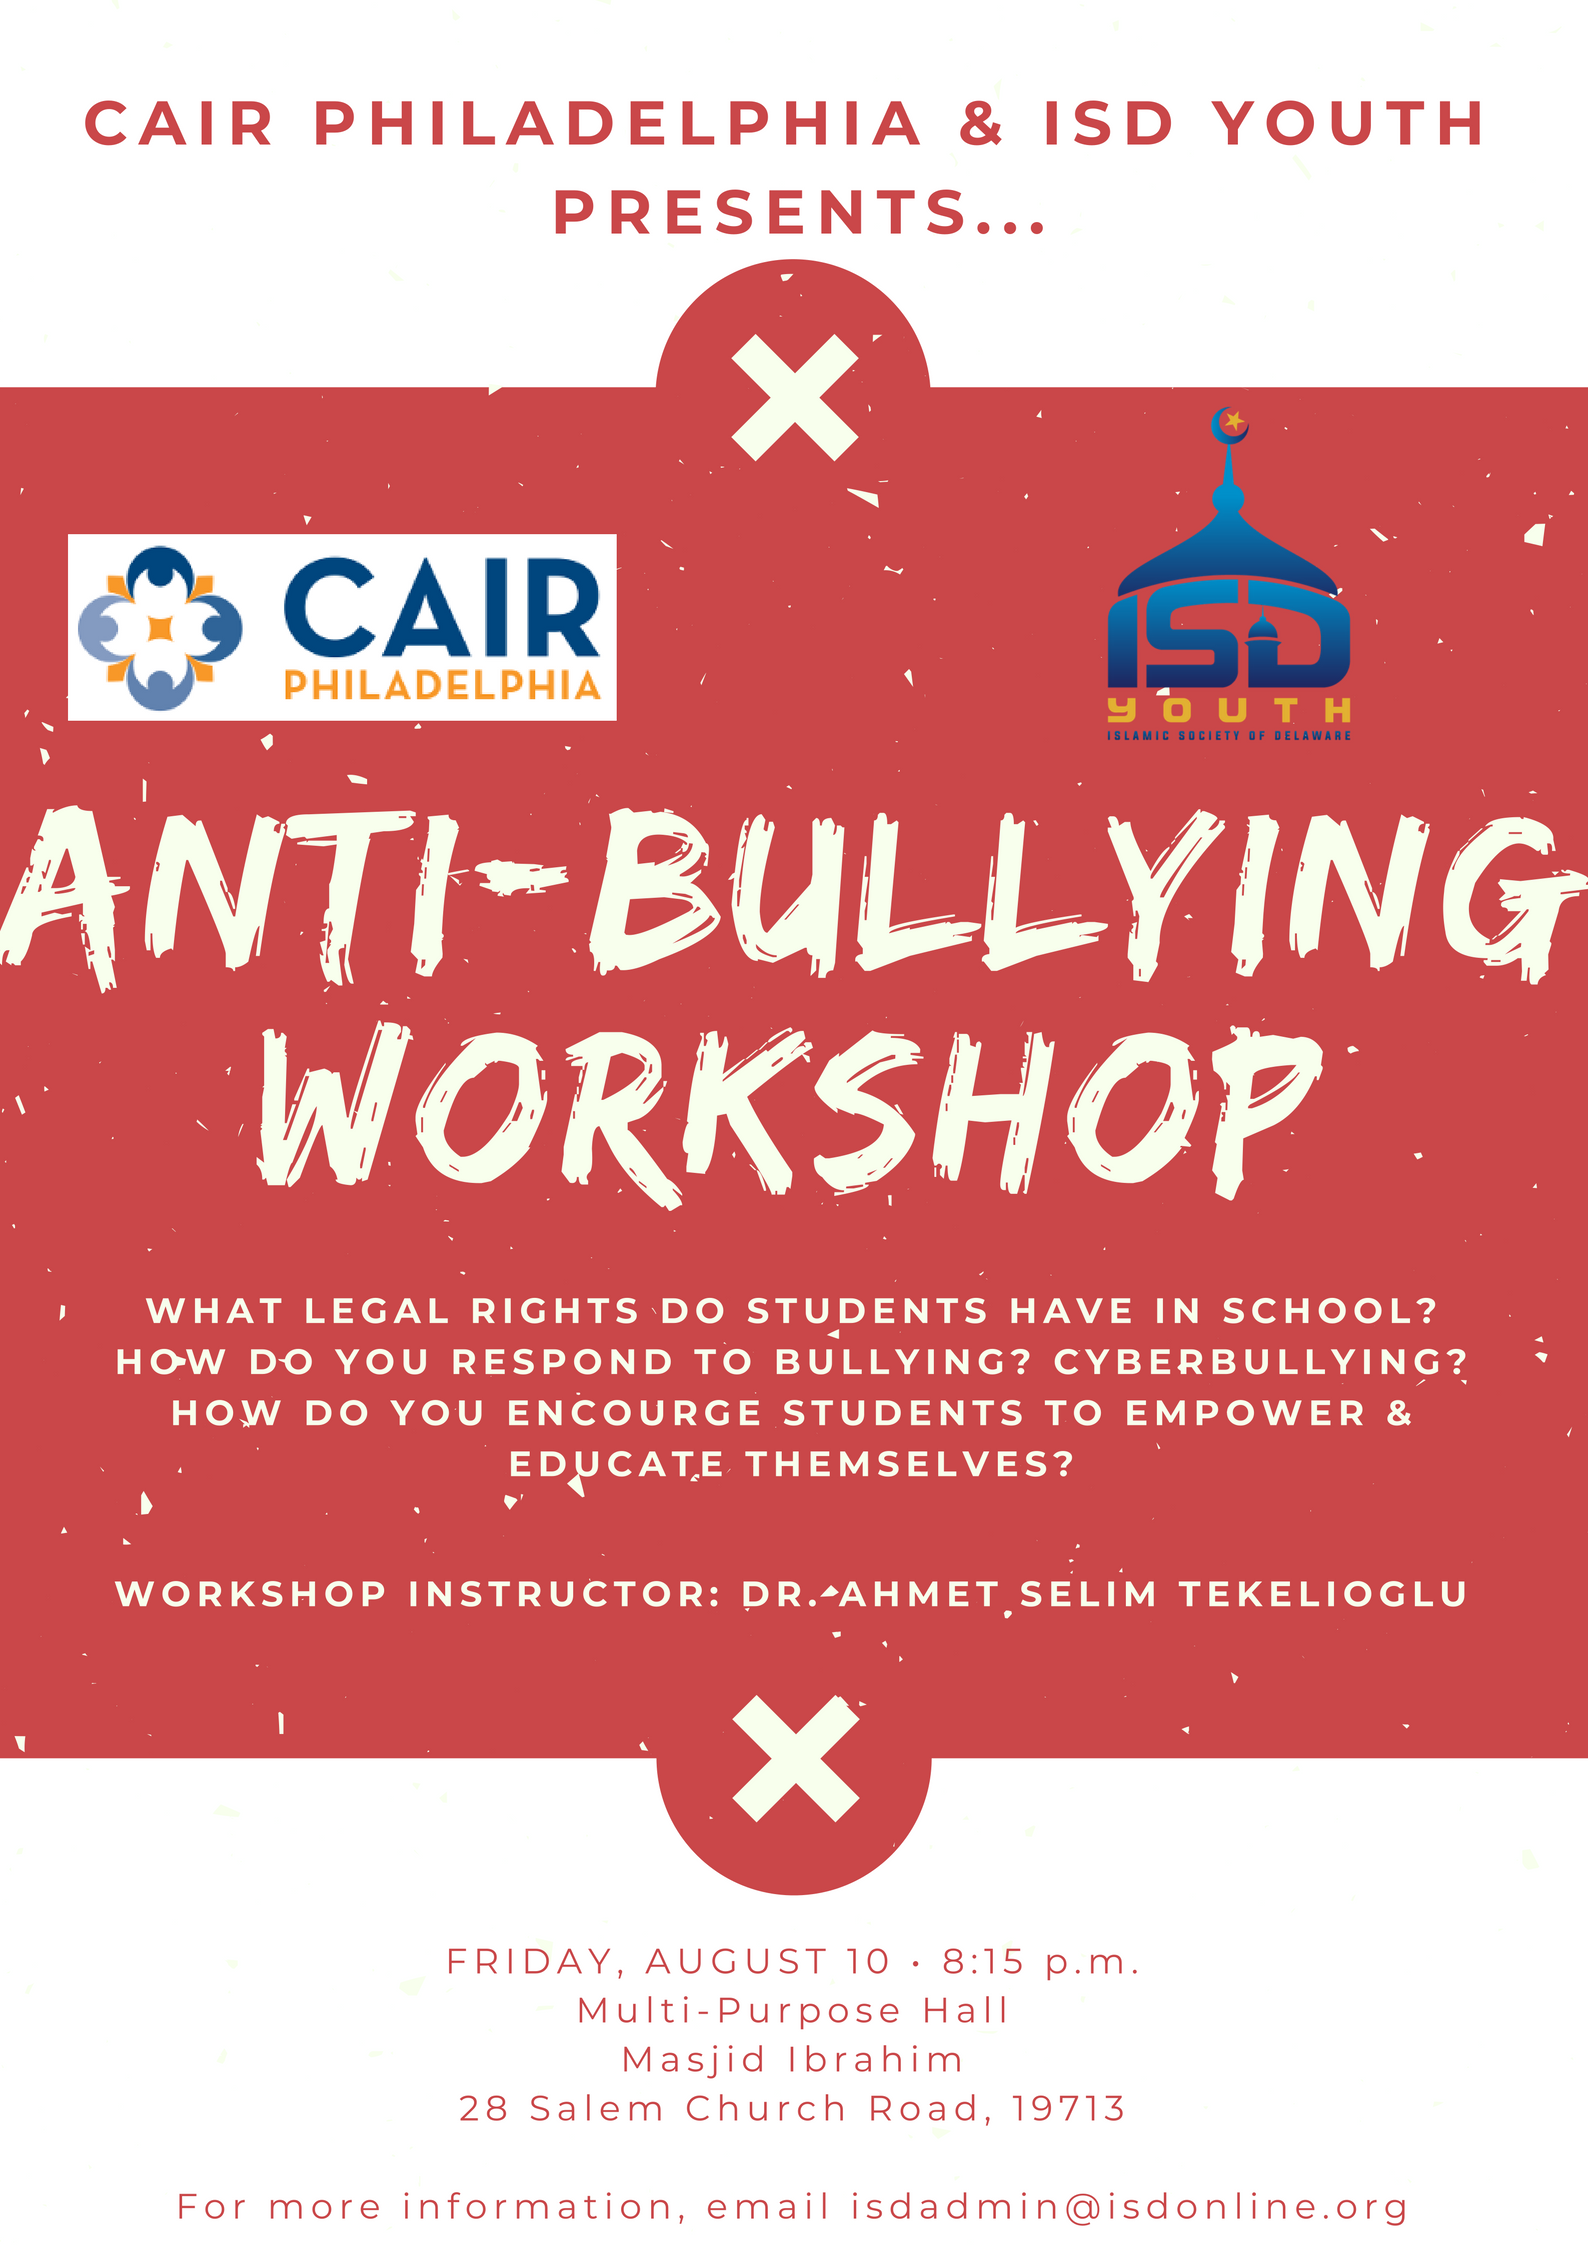 Anti Bullying Workshop August 10 Red Cross Cpr Training August 11